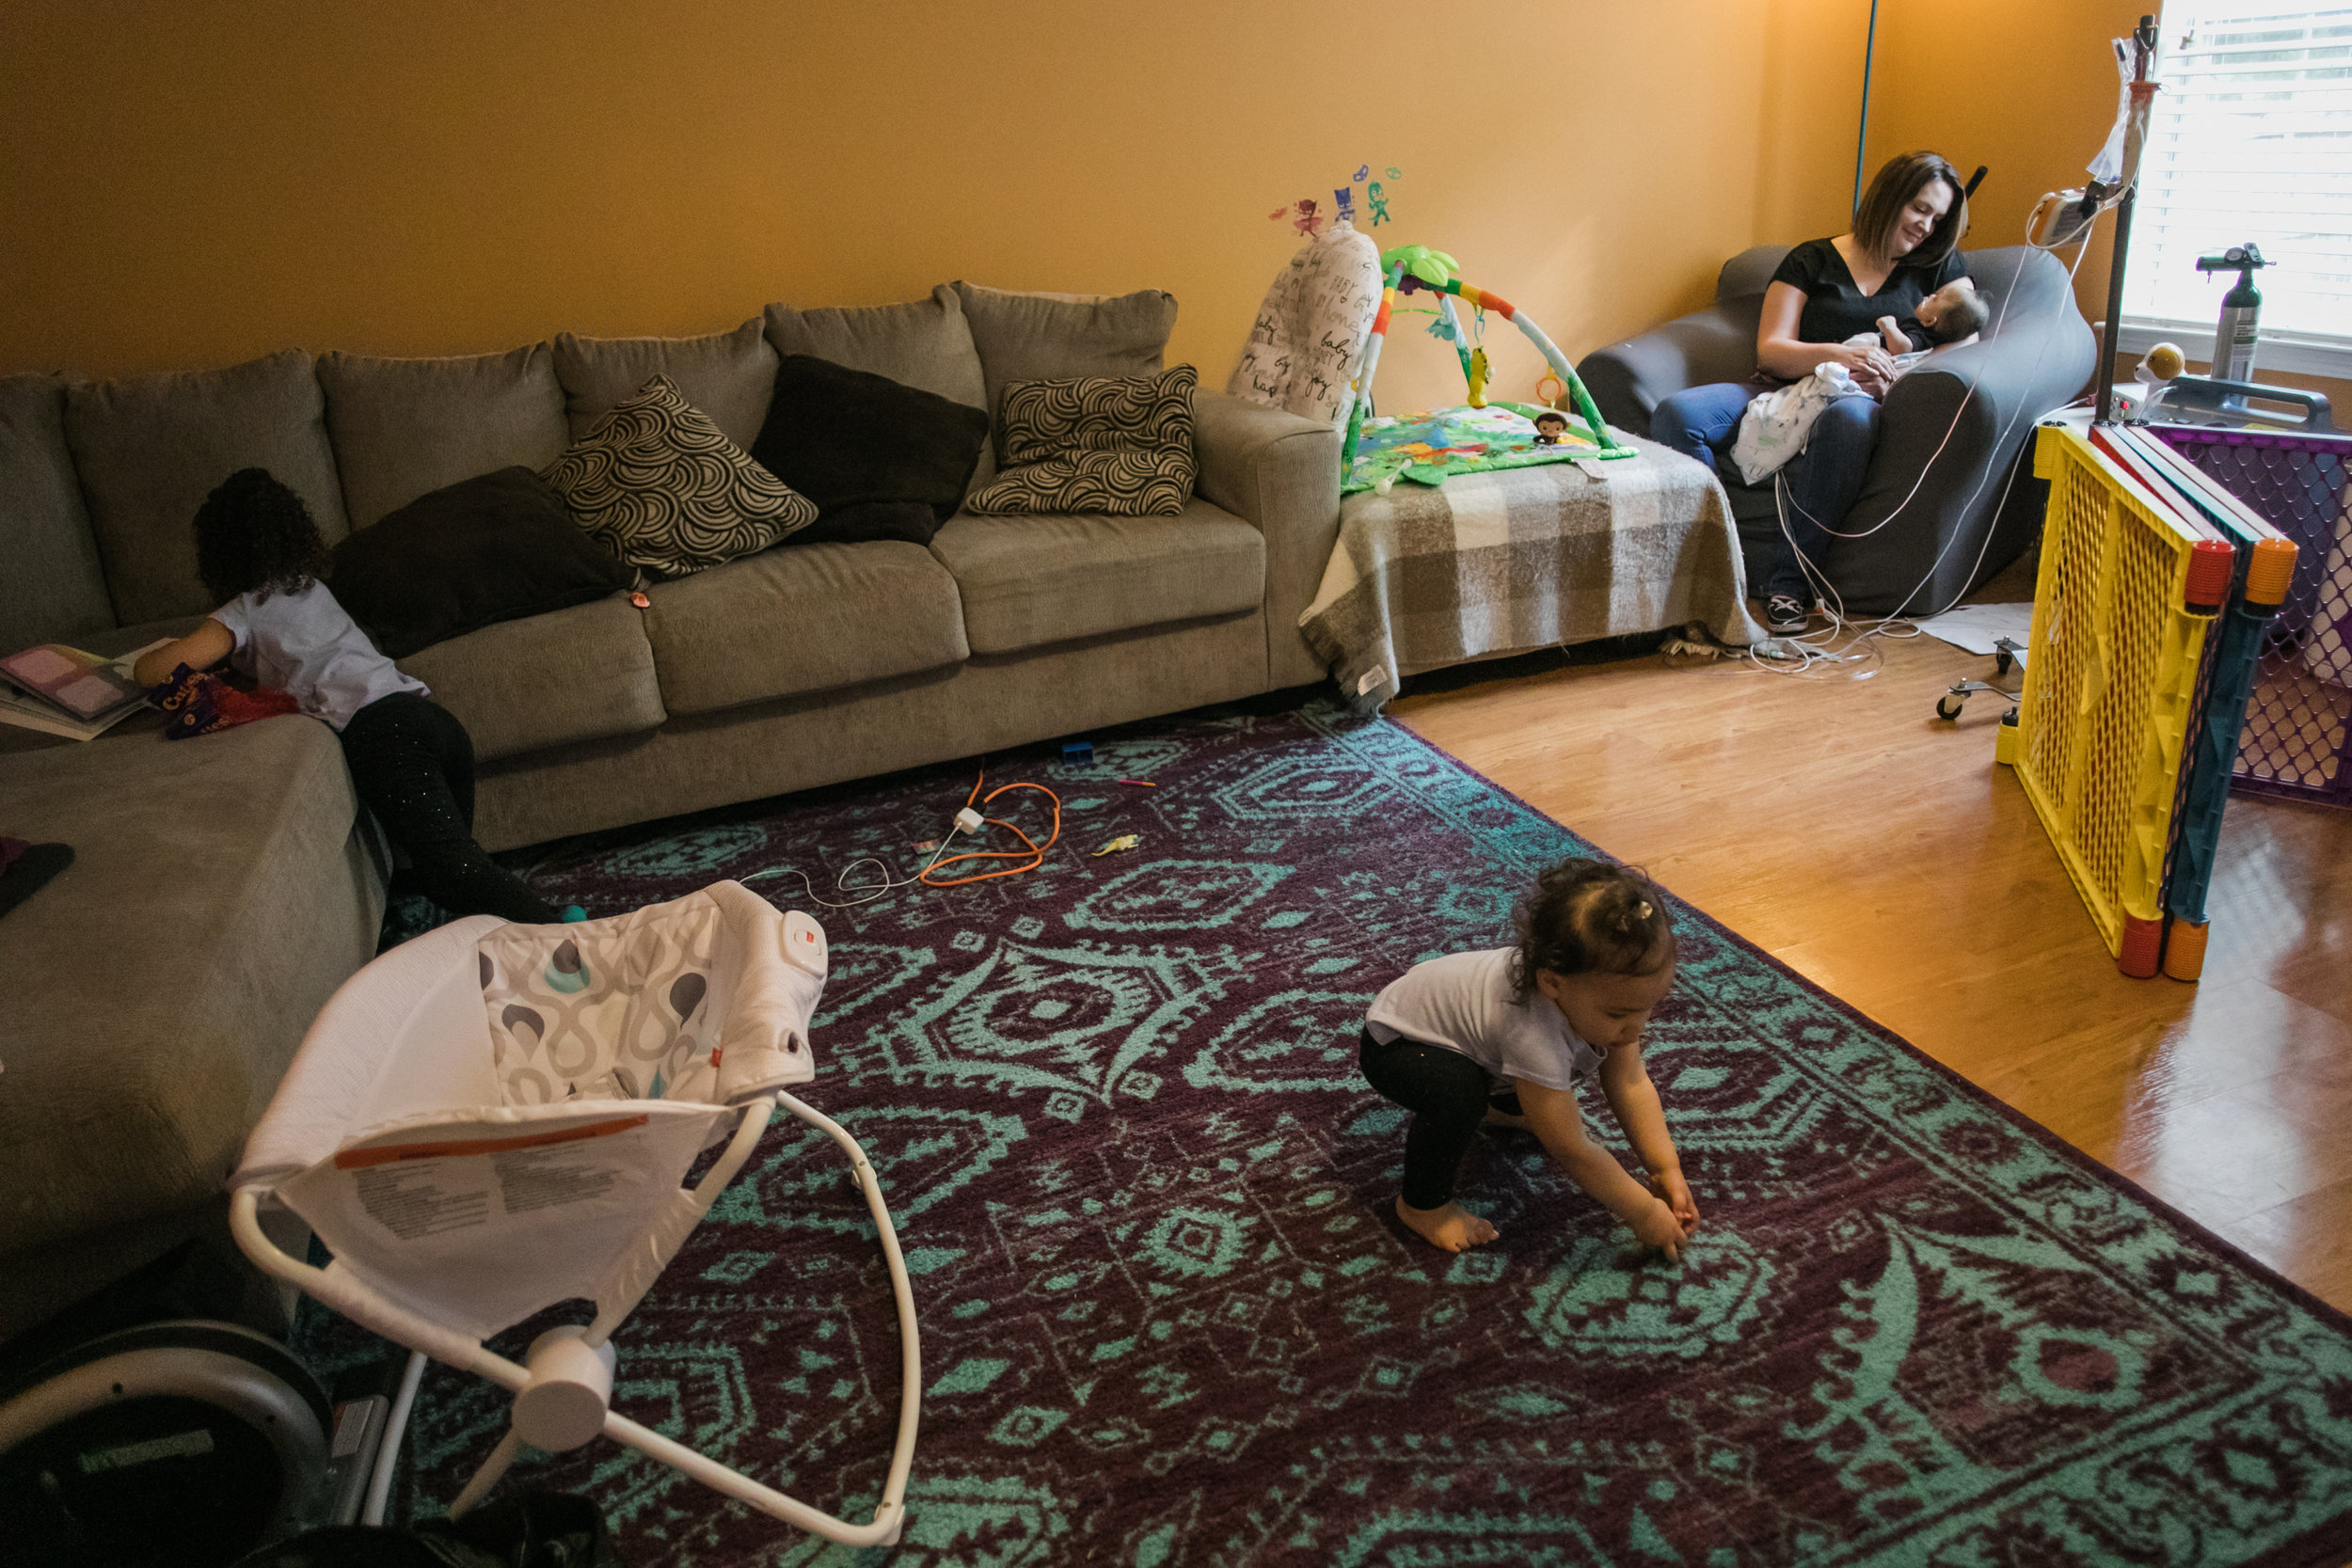 A mother holds her infant son in the corner of a living room as her two daughters play on their own